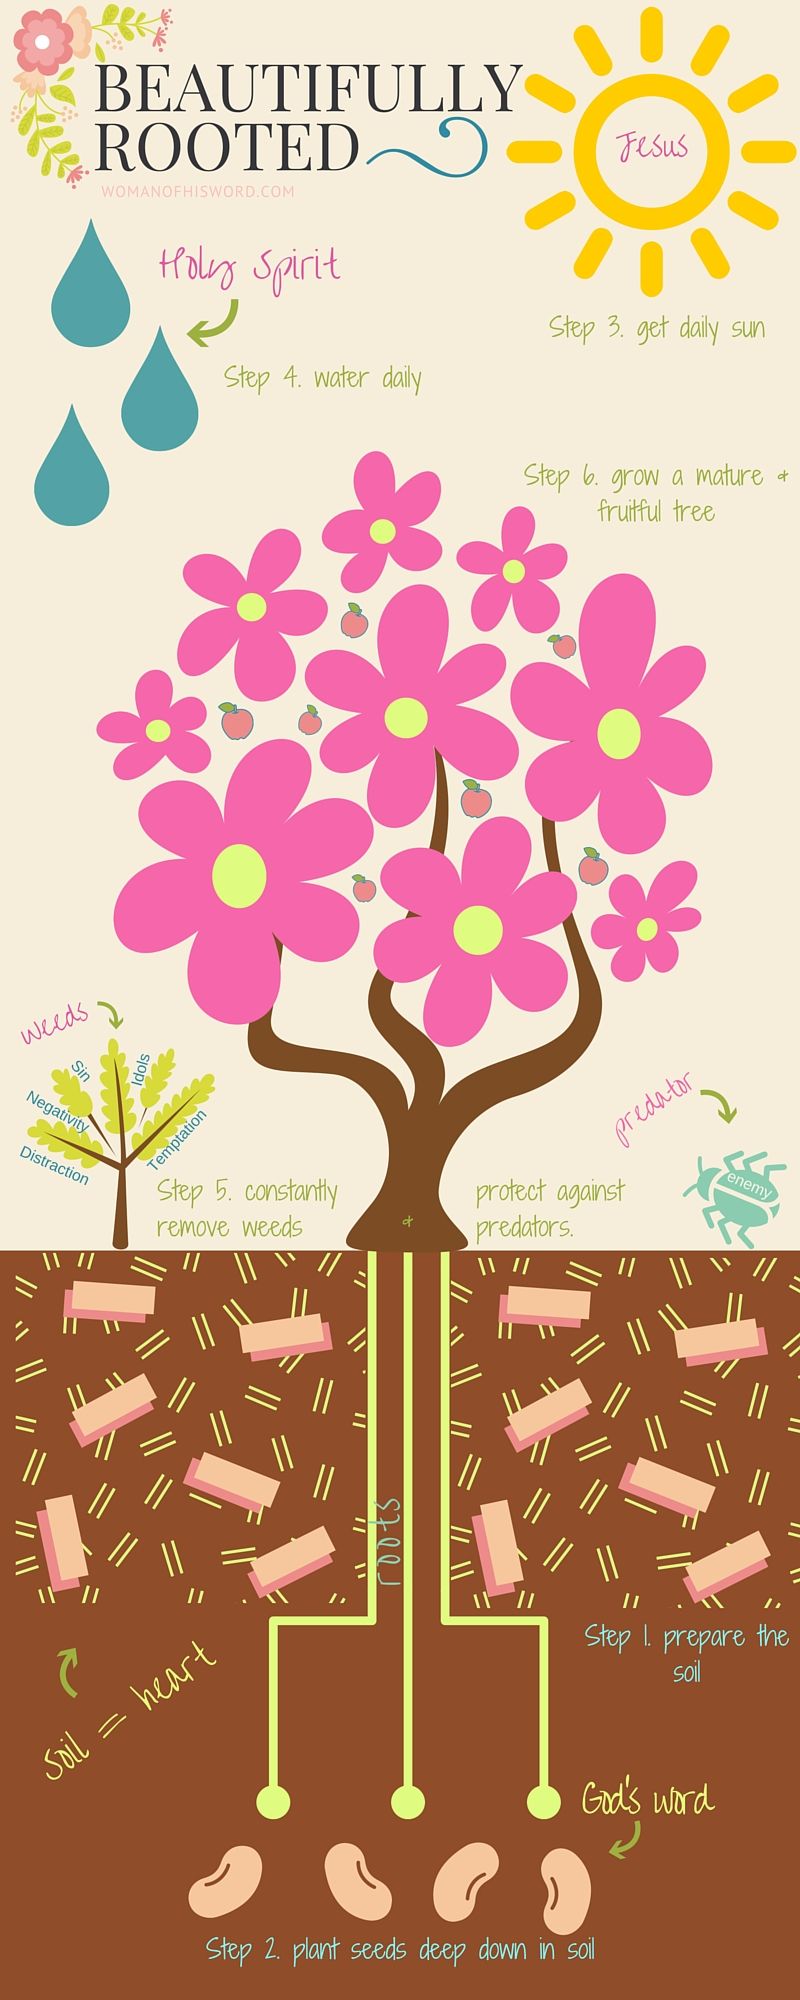 I Hate Monday Images Beautifully Rooted –...